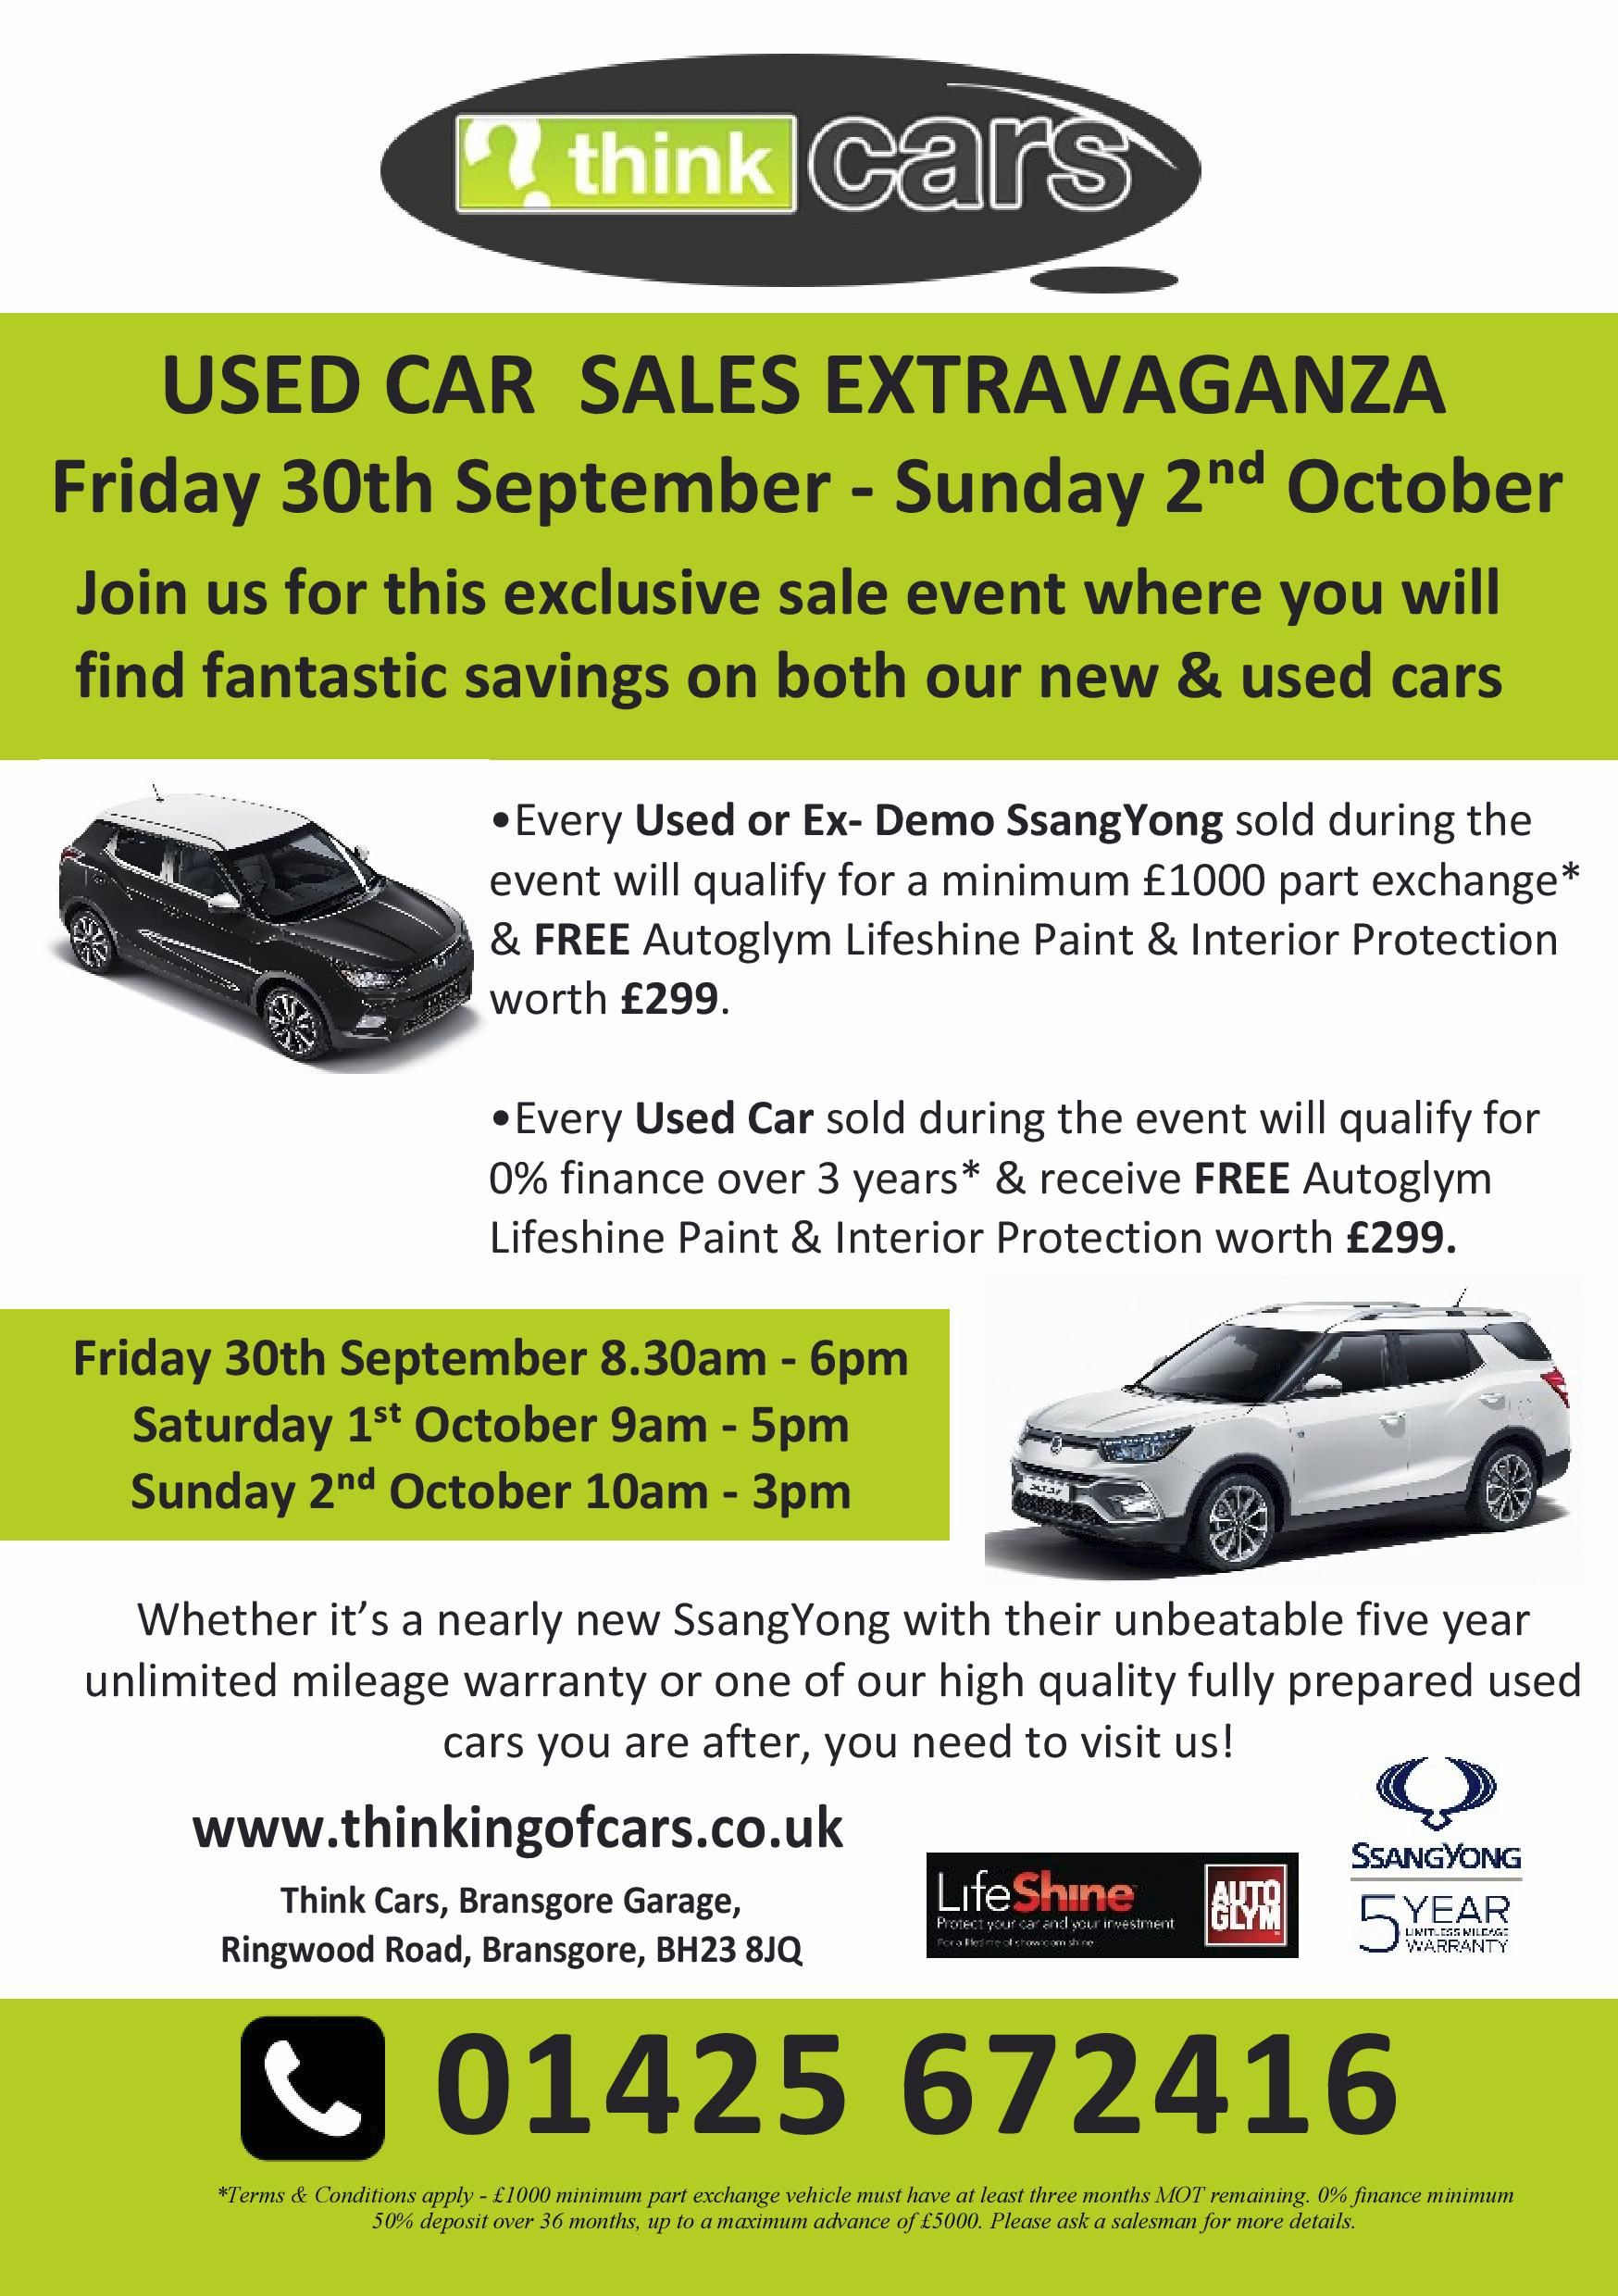 Think Cars Used Car Sales Extravaganza